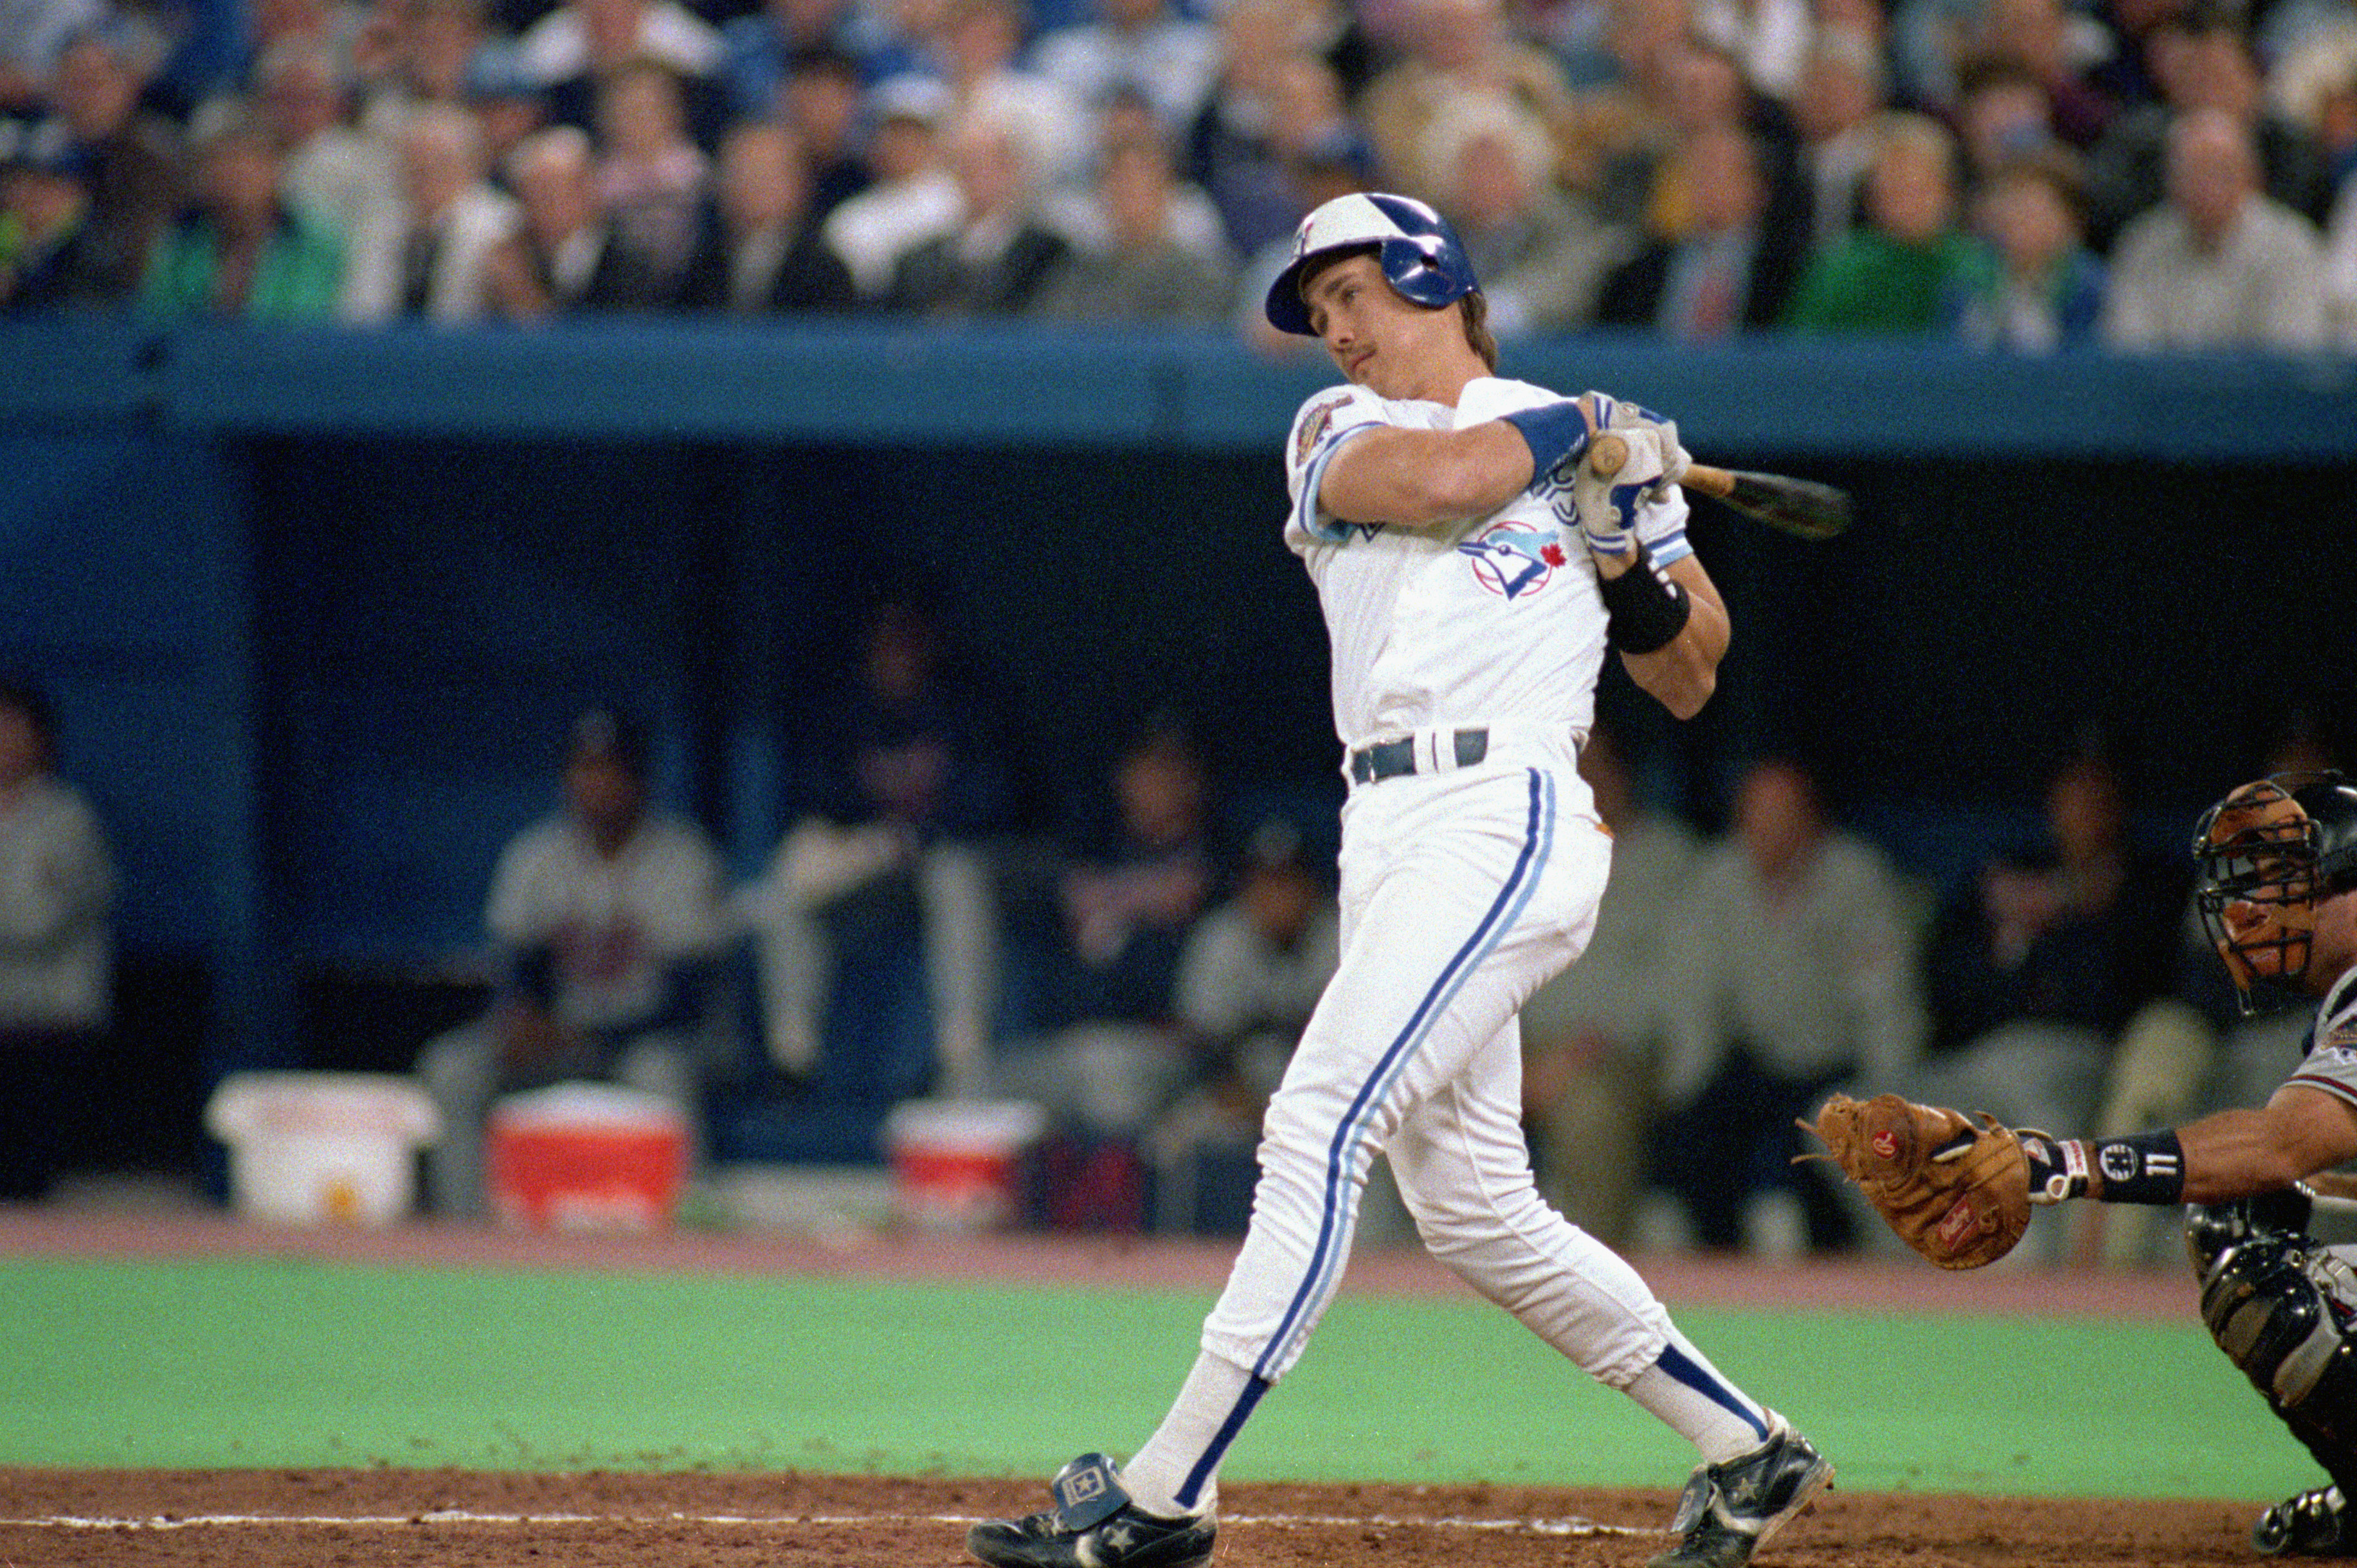 TORONTO - OCTOBER 22:  Pat Borders #10 hits an Atlanta Braves pitch during game 5 of the World Series at the SkyDome in Toronto, Ontario, Canada, on October 22, 1992.  The Braves on 7-2.  (Photo by Rick Stewart/Getty Images)